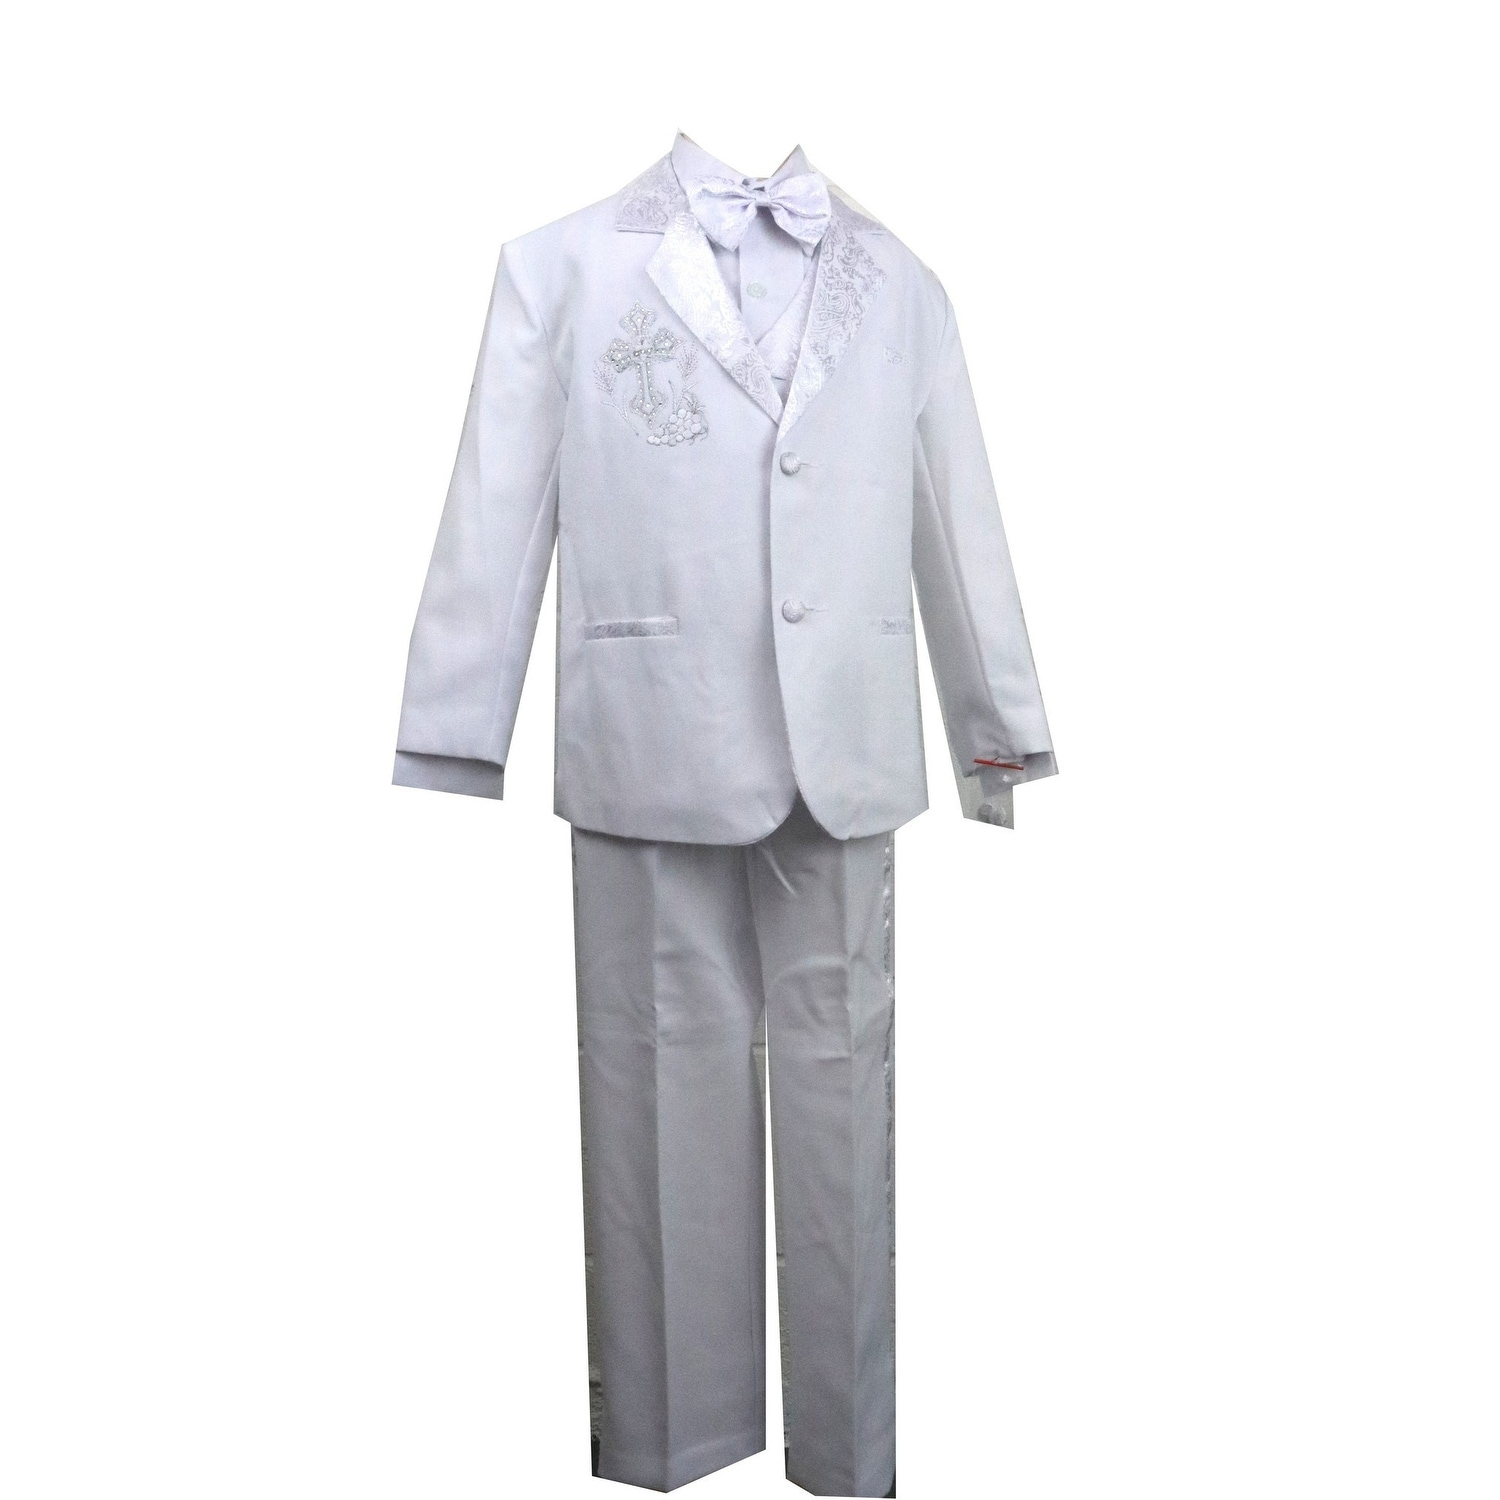 Angels Garment Baby Boys White 5 pcs Gold Embroidered Tuxedo 3-24M